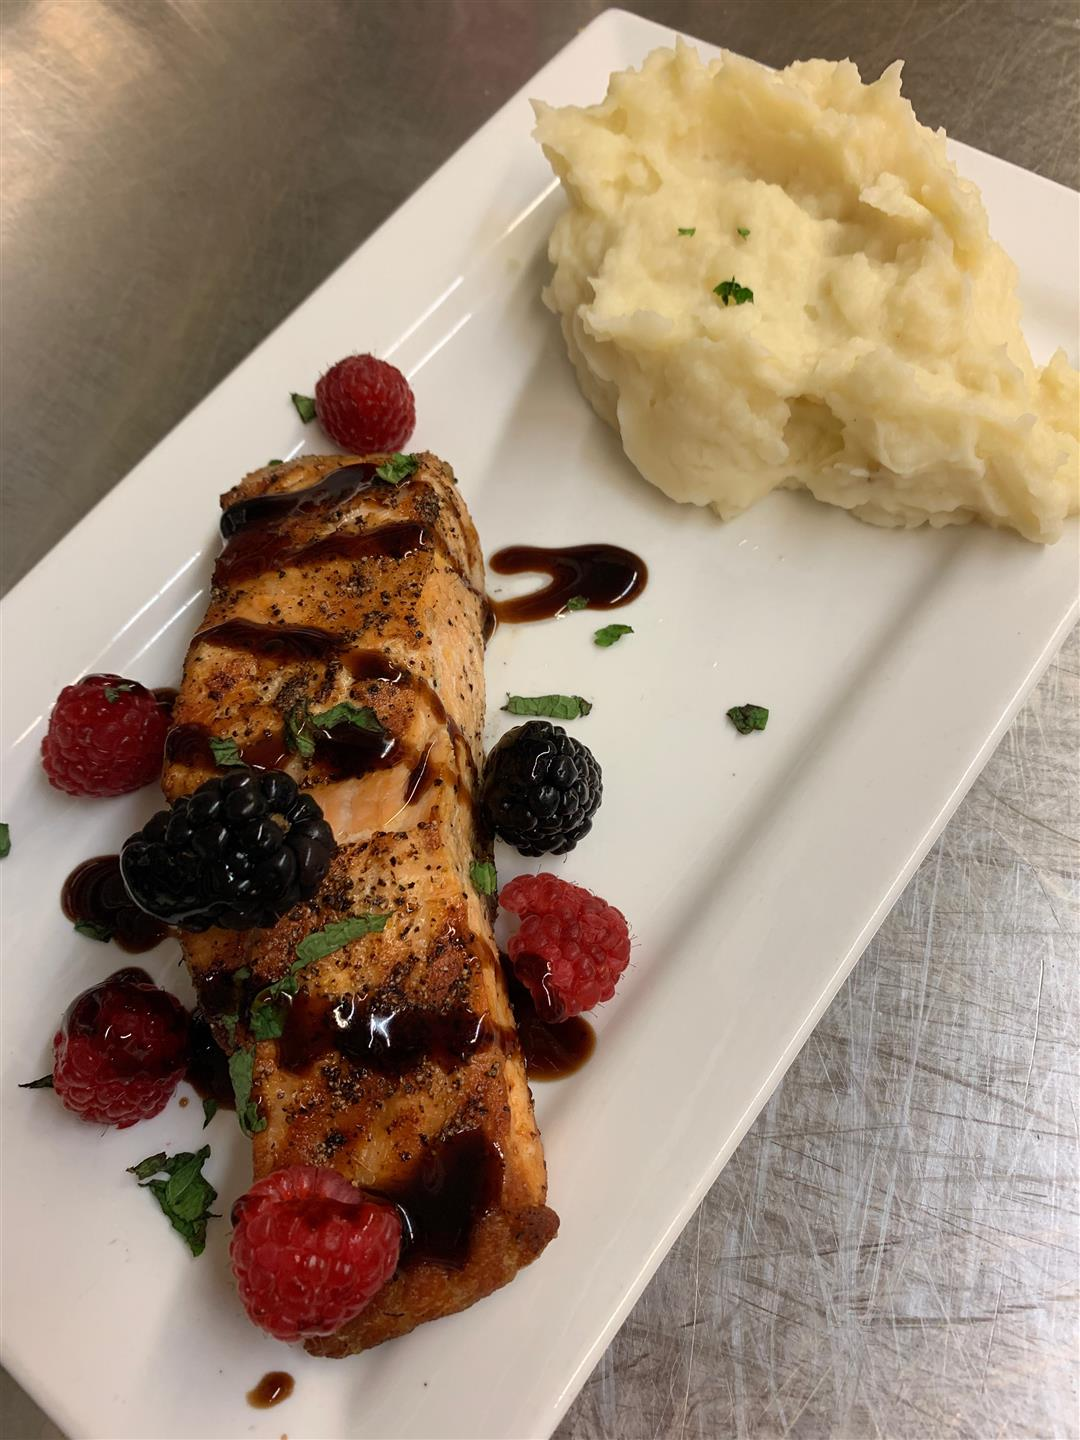 Grilled Salmon with fresh Berries